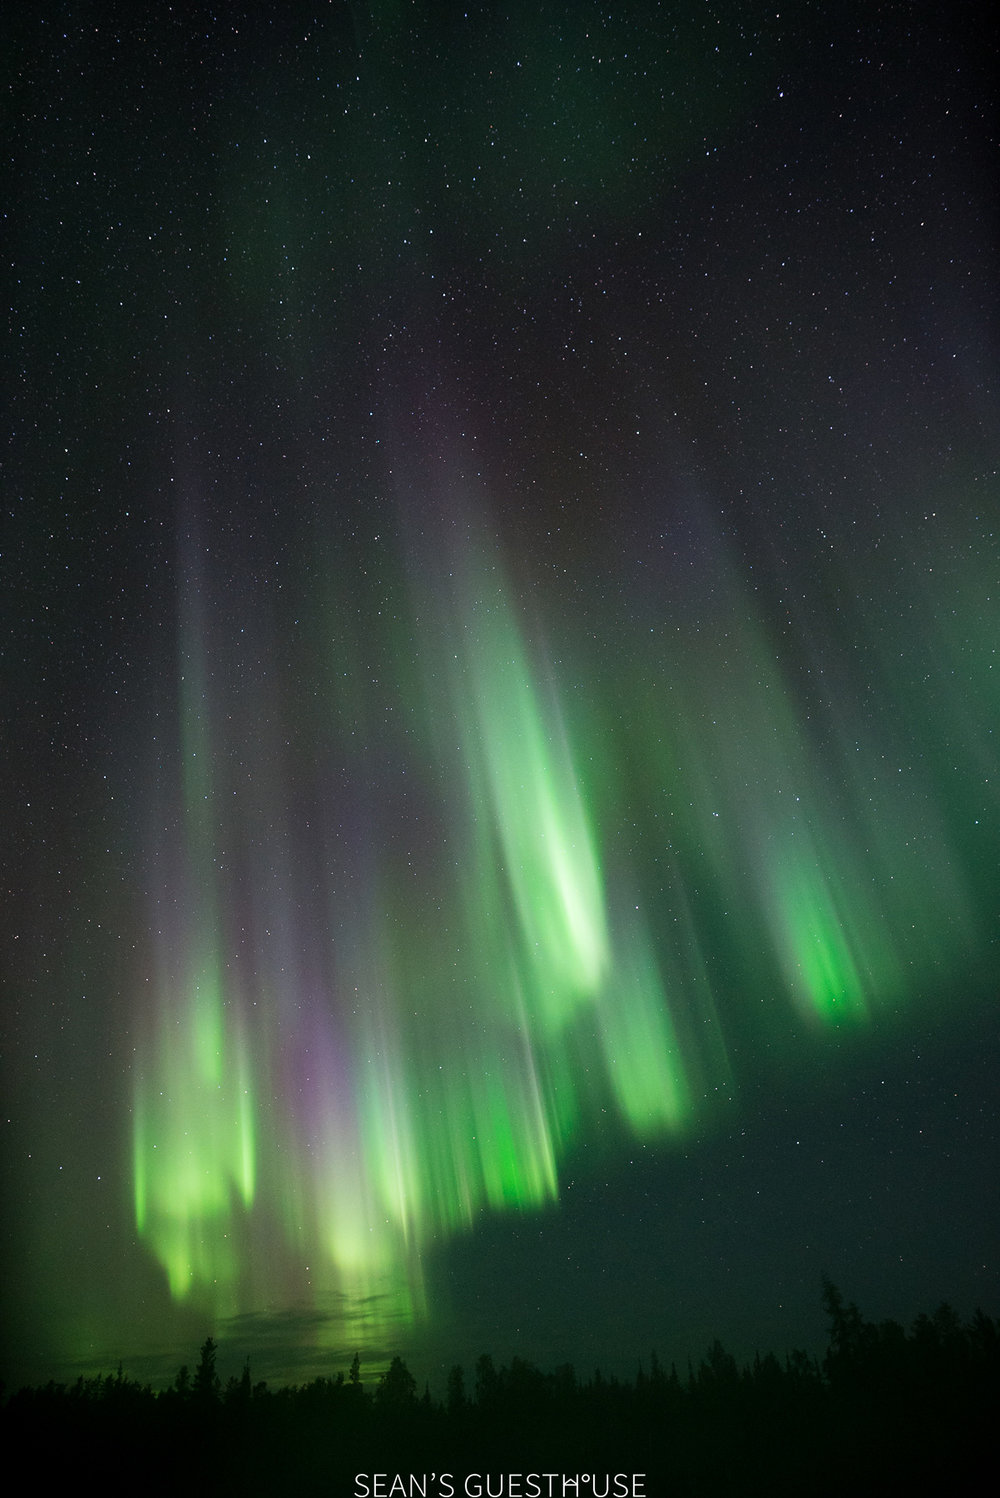 Sean's Guesthouse - Yellowknife - High Speed Solar Wind Stream - 11.jpg